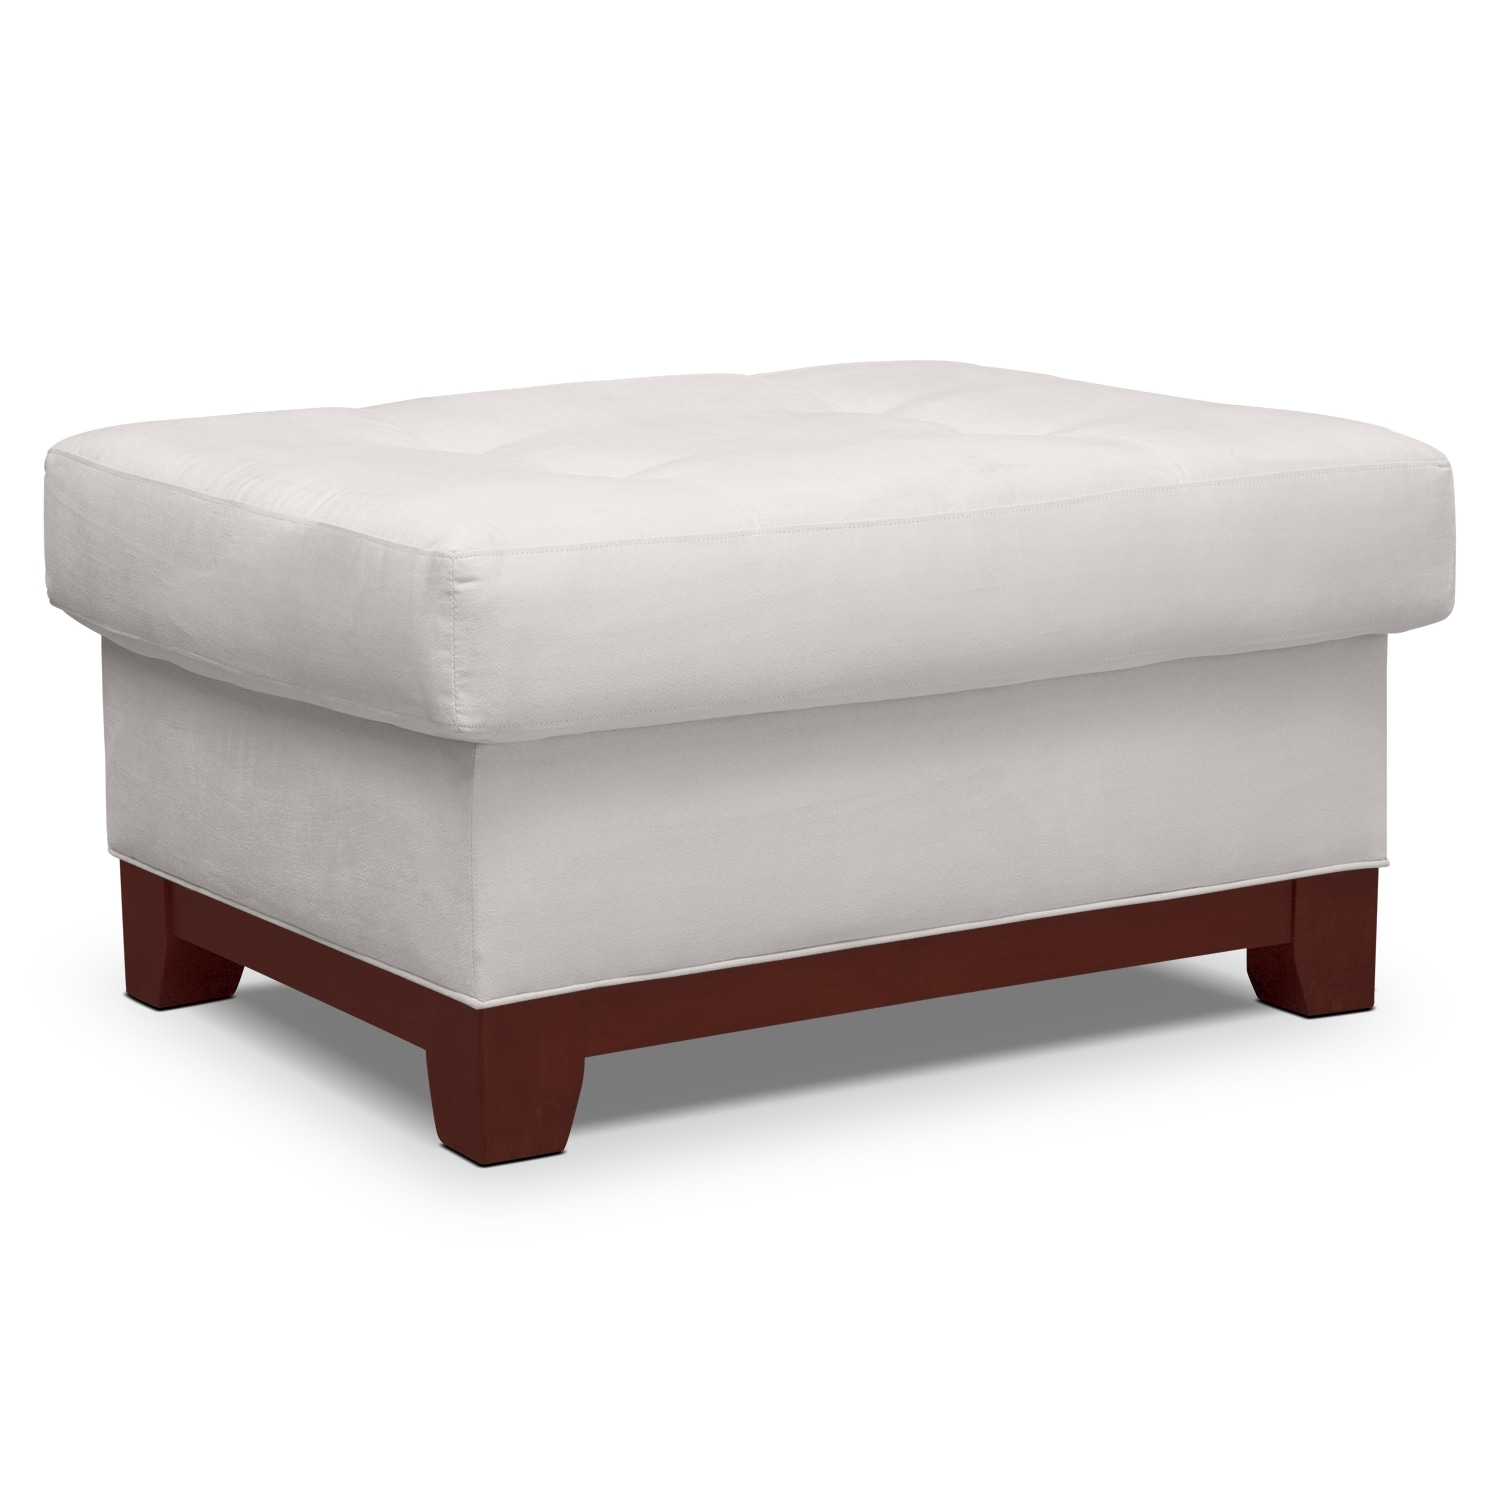 Living Room Furniture - Soho III Ottoman